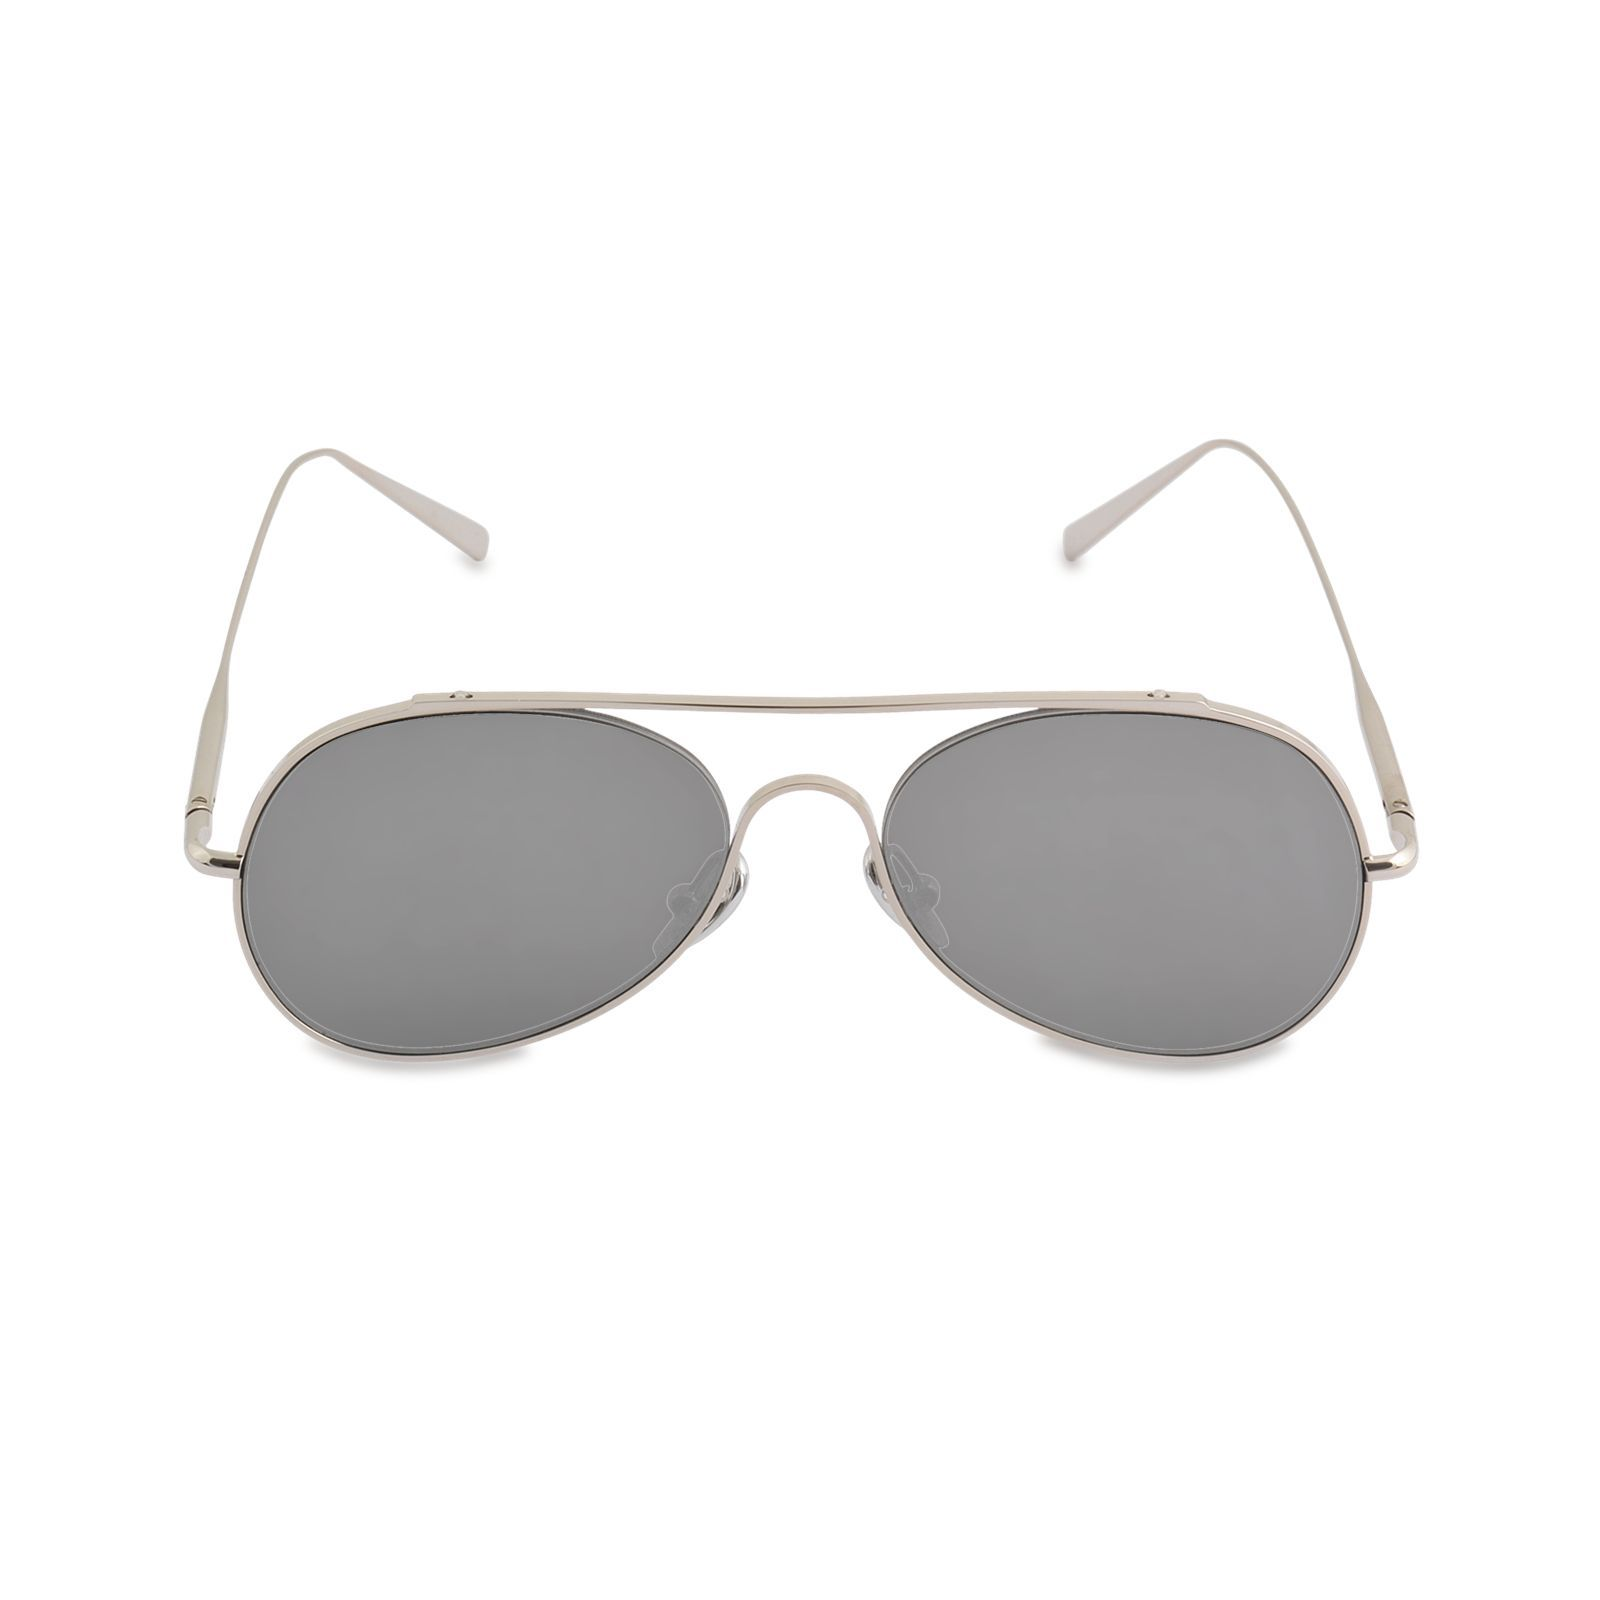 fd8c51a10ca3a0 Ray Ban Aviator Small - Lunettes de soleil Homme - argent   BrandAlley